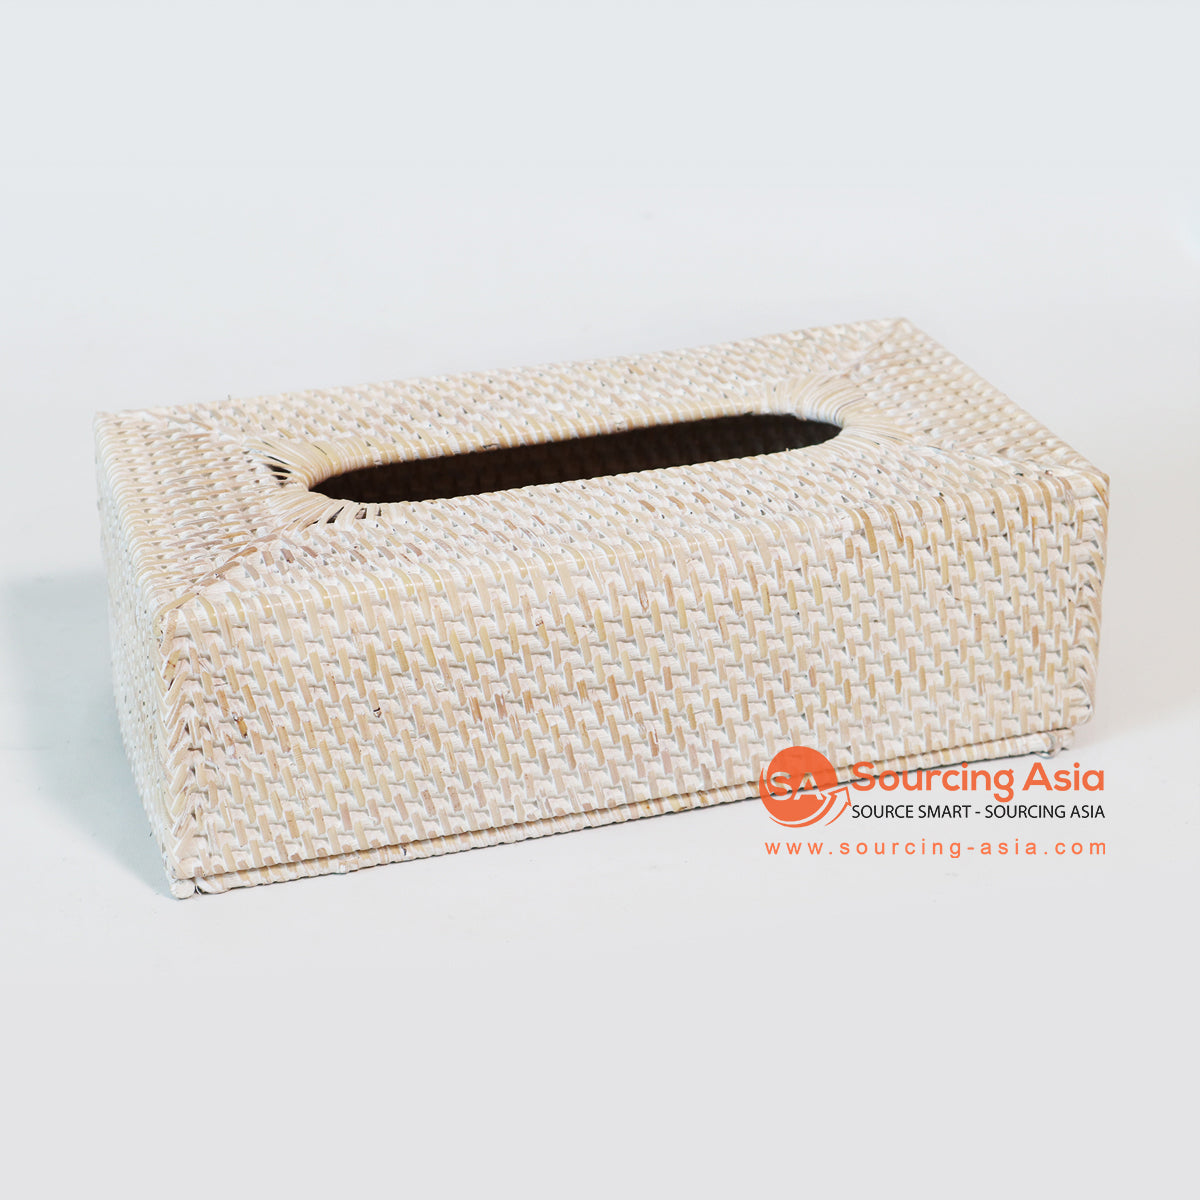 MTIC070-4 RATTAN TISSUE BOX COLOR WHITE WASH